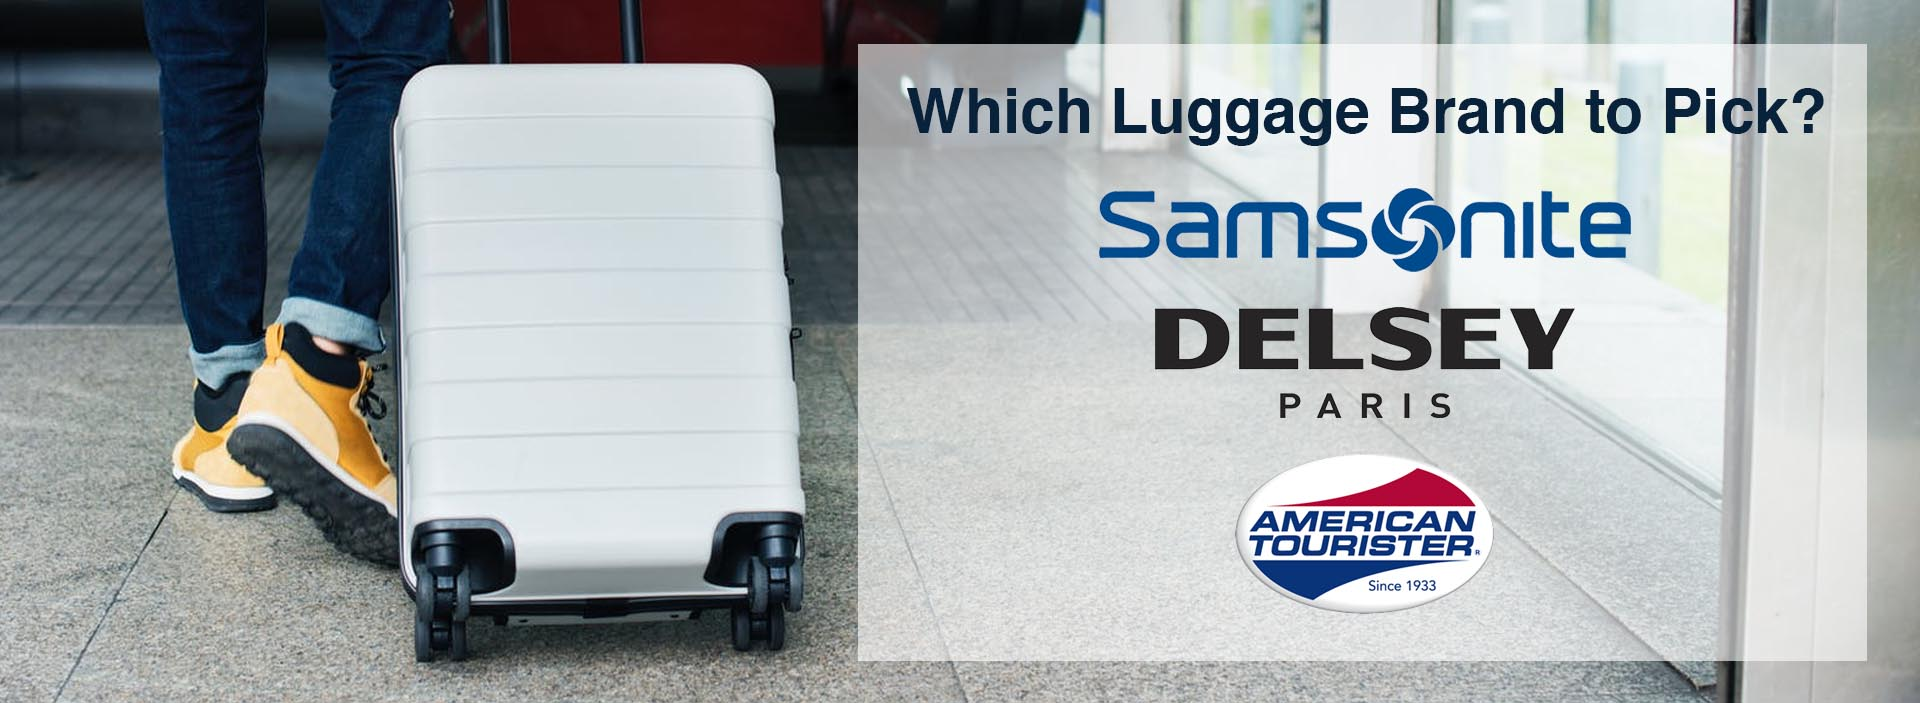 Samsonite vs. Delsey vs. American Tourister: Which Luggage Brand to Pick?